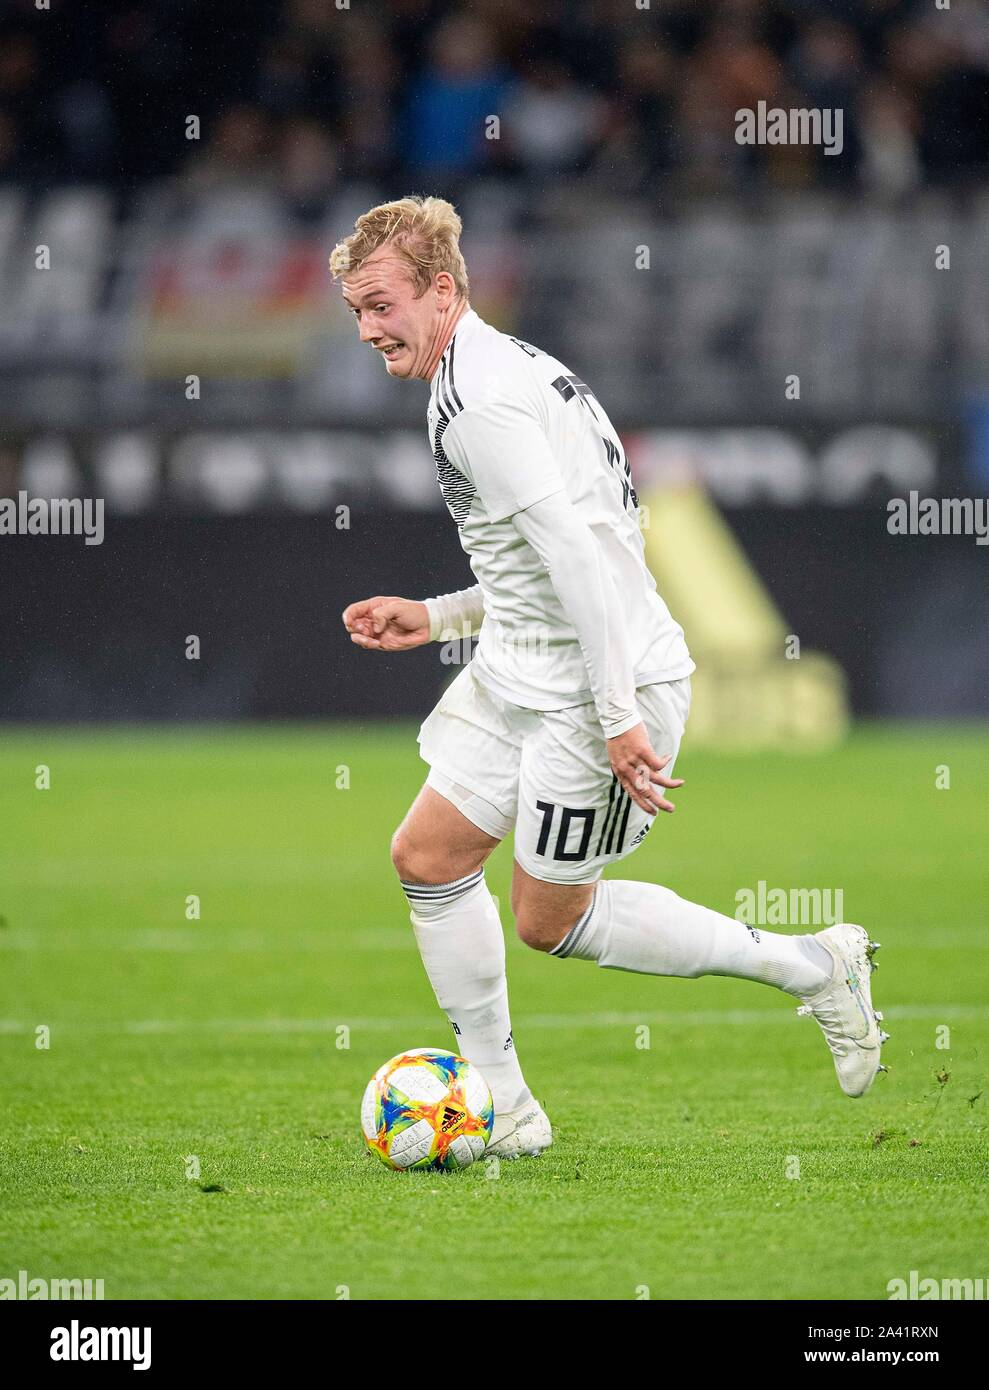 Julian BRANDT (GER) Promotion, Football Laenderpiel, Friendly Match, Germany (GER) - Argentina (ARG) 2: 2, on 09/10/2019 in Dortmund/Germany. ¬ | usage worldwide Stock Photo